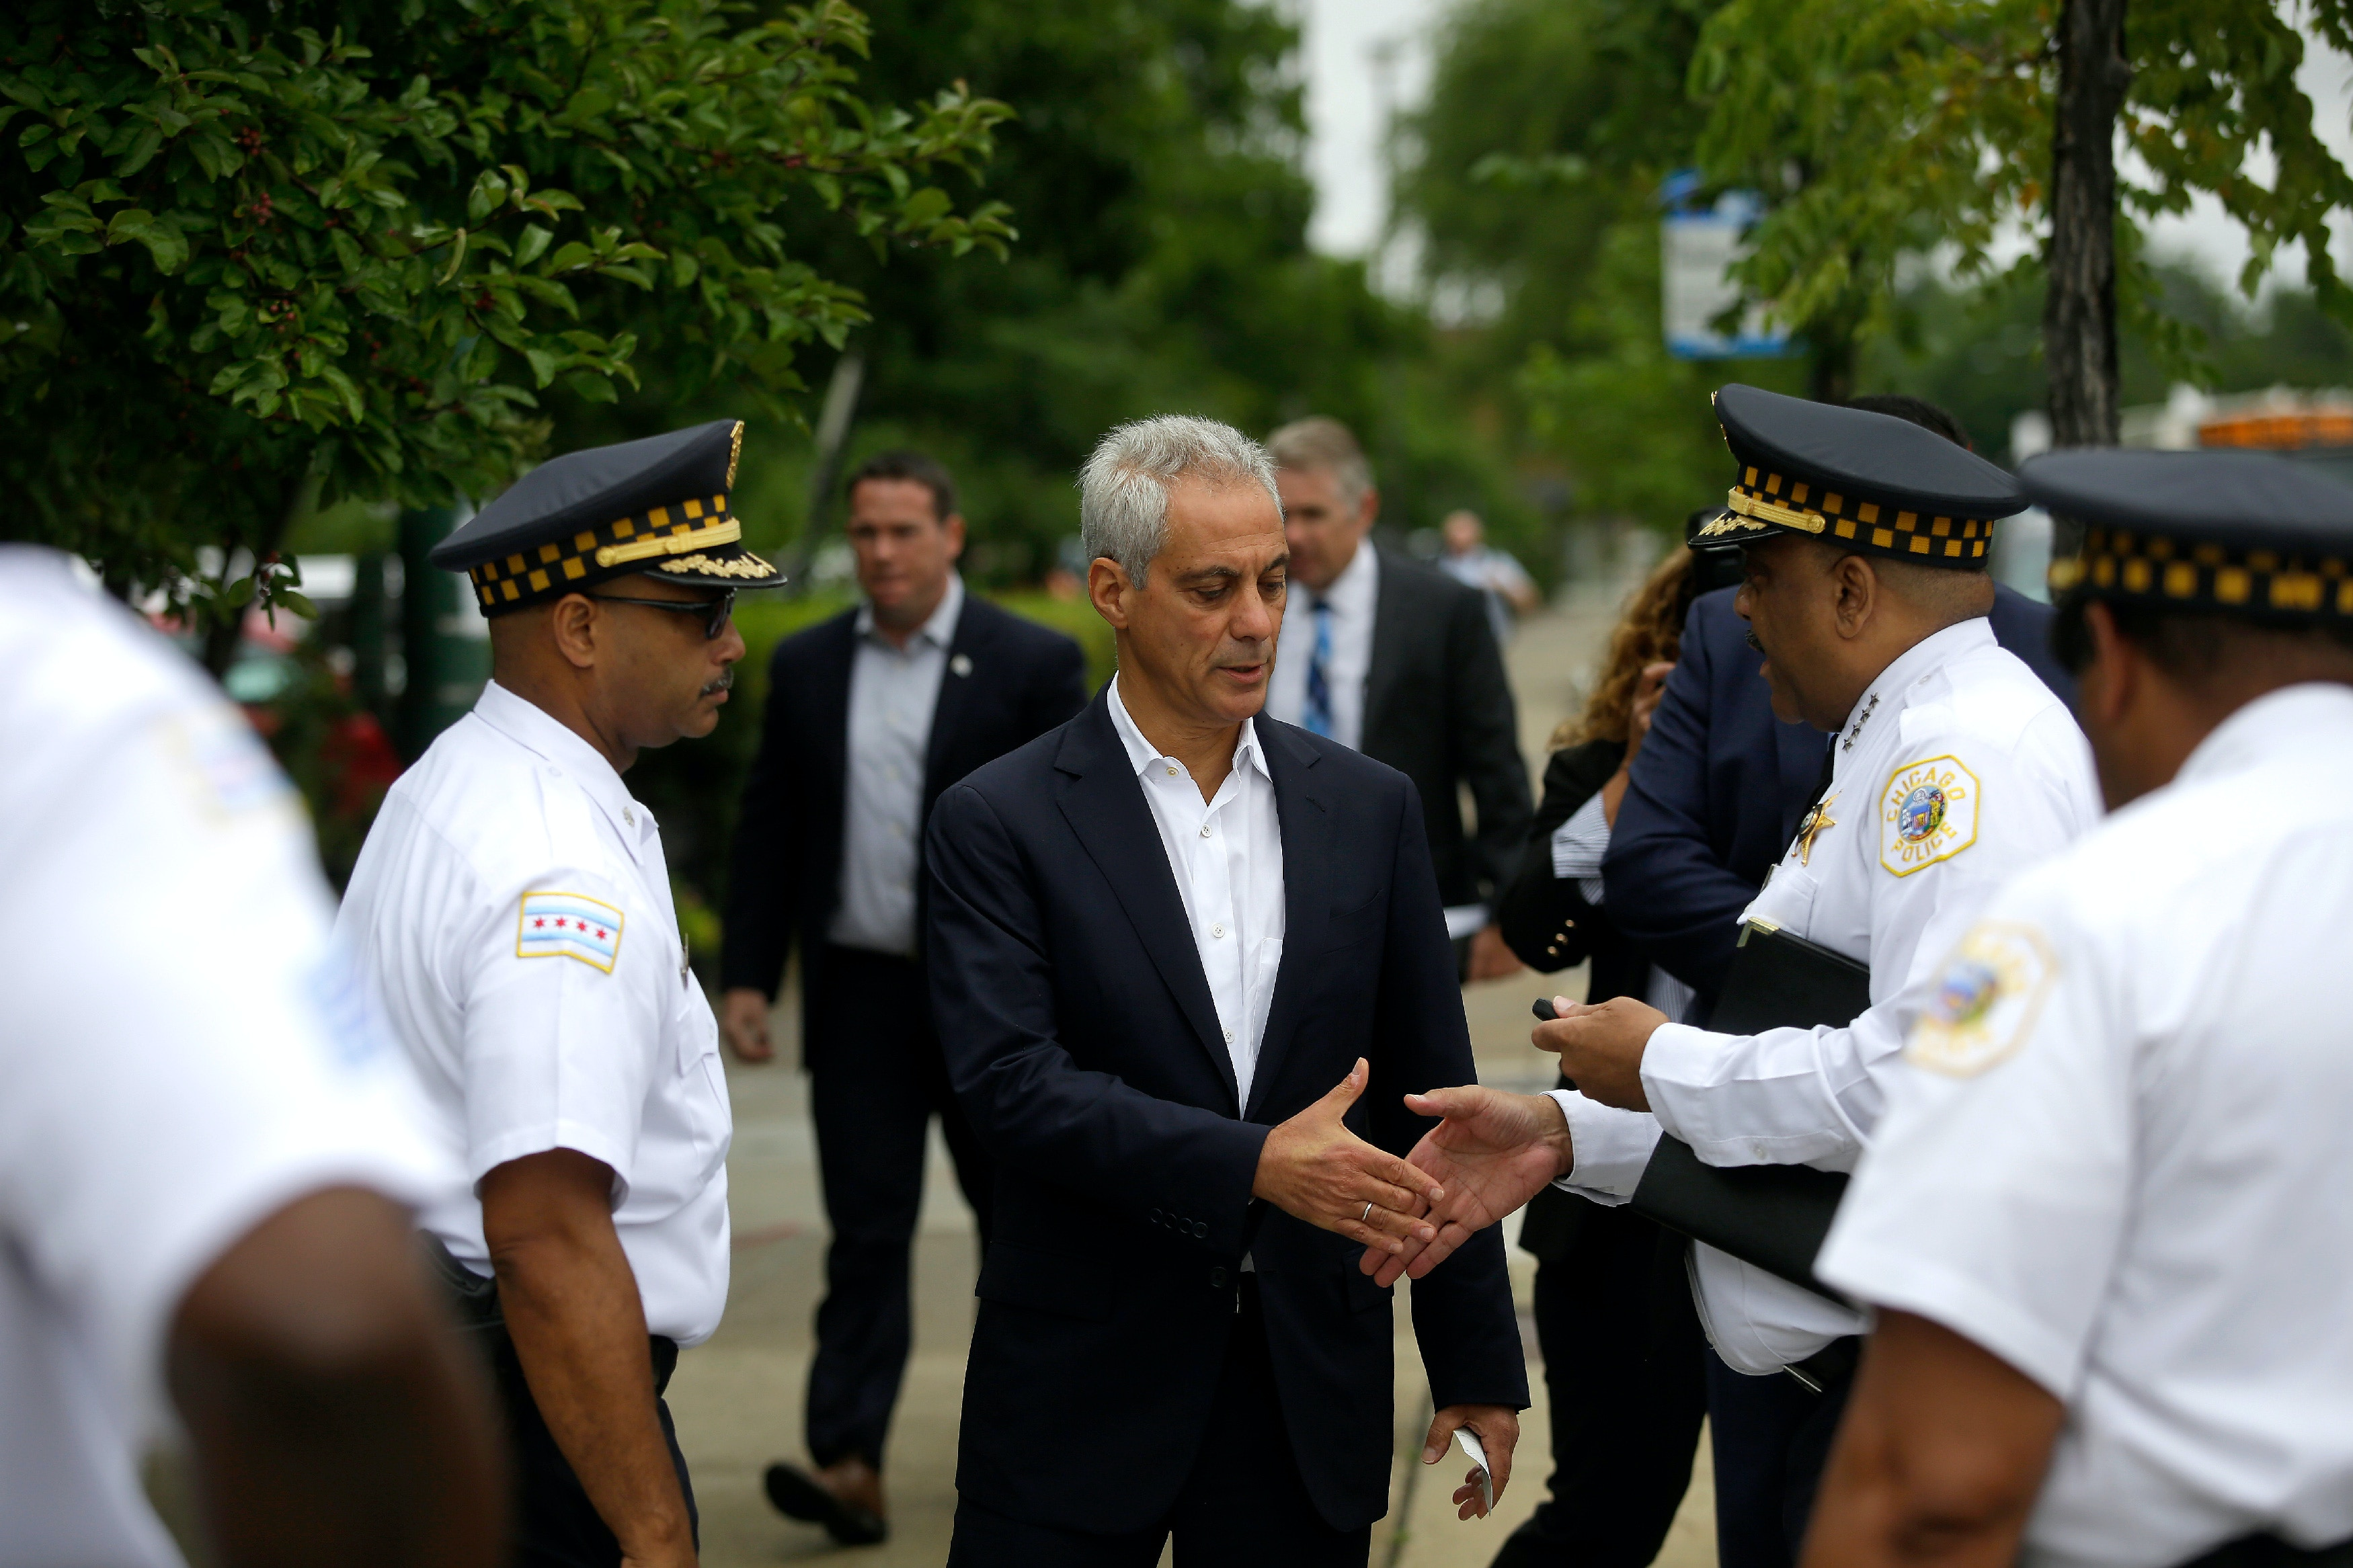 CHICAGO, IL - AUGUST 6 : Chicago Mayor Rahm Emanuel greets Chicago Police Superintendent Eddie Johnson before they spoke at a news conference to address reporters about Chicago's weekend of gun violence, Monday, August 6, 2018 in Chicago, Illinois. Chicago experienced one of it's most violent weekends of the year, after more then 70 people were shot, with 12 fatalities. (Photo by Joshua Lott/Getty Images)